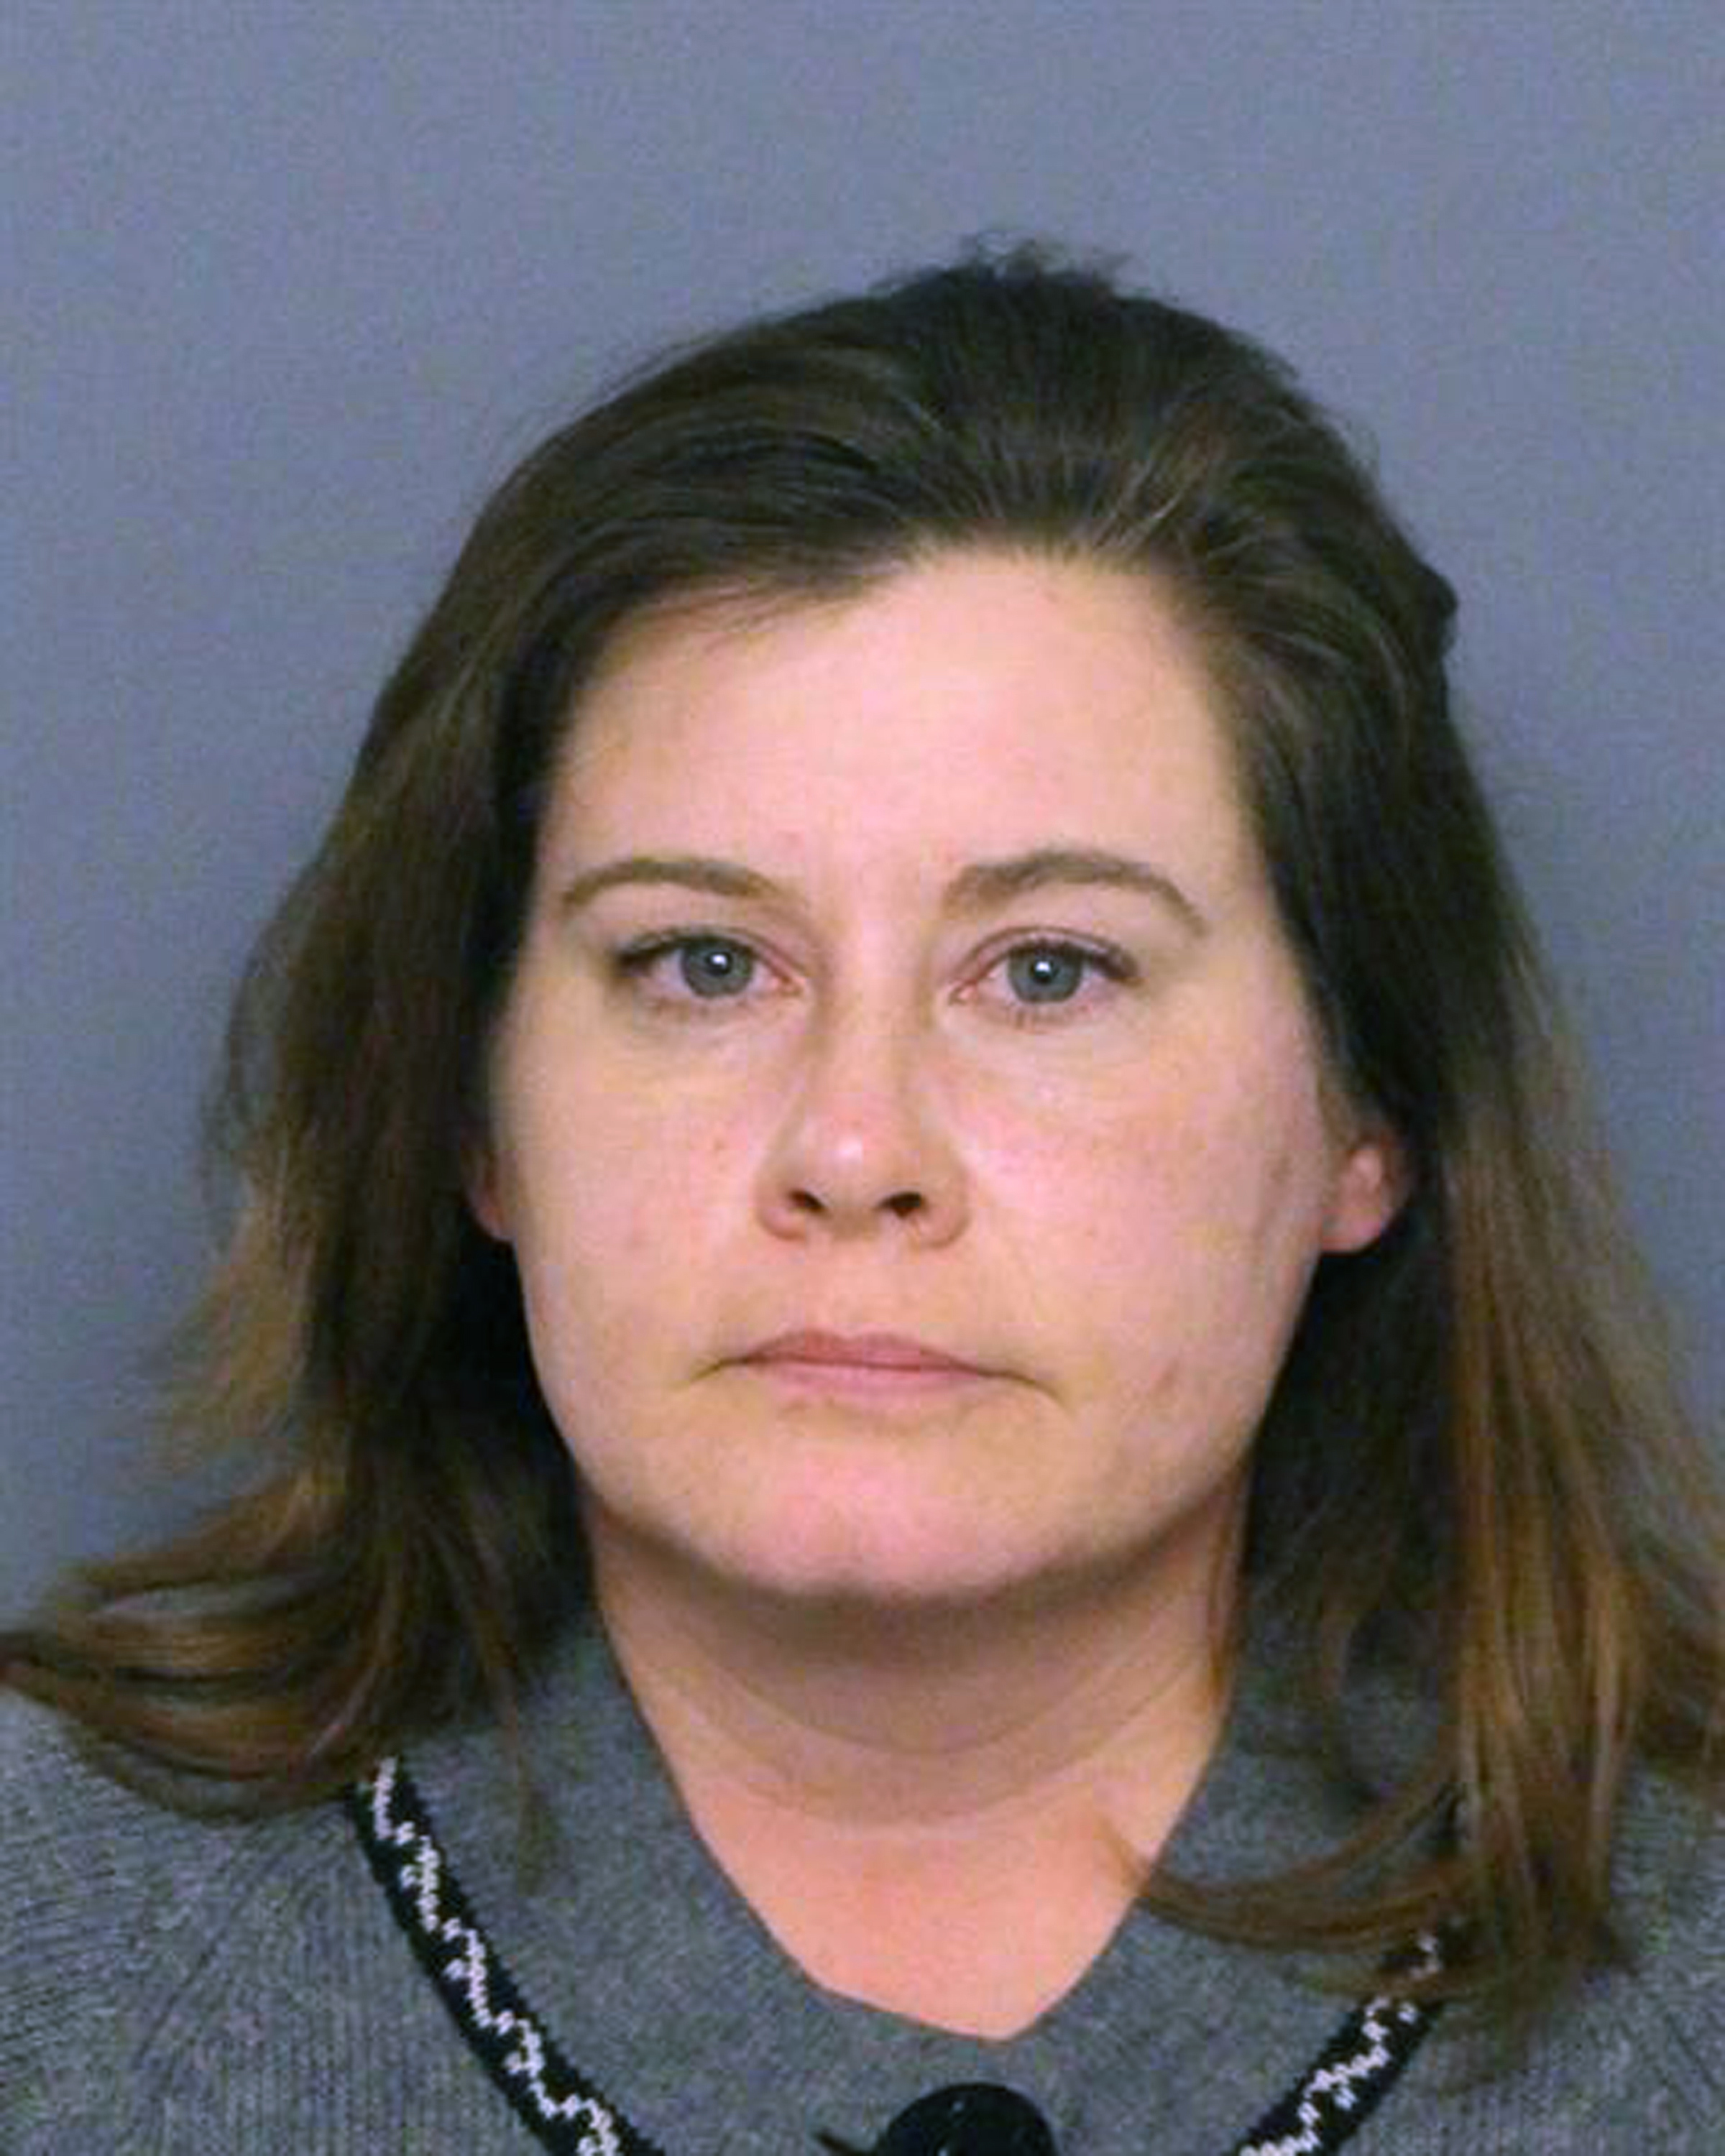 Photo: Rep. Lori Saine booking photo